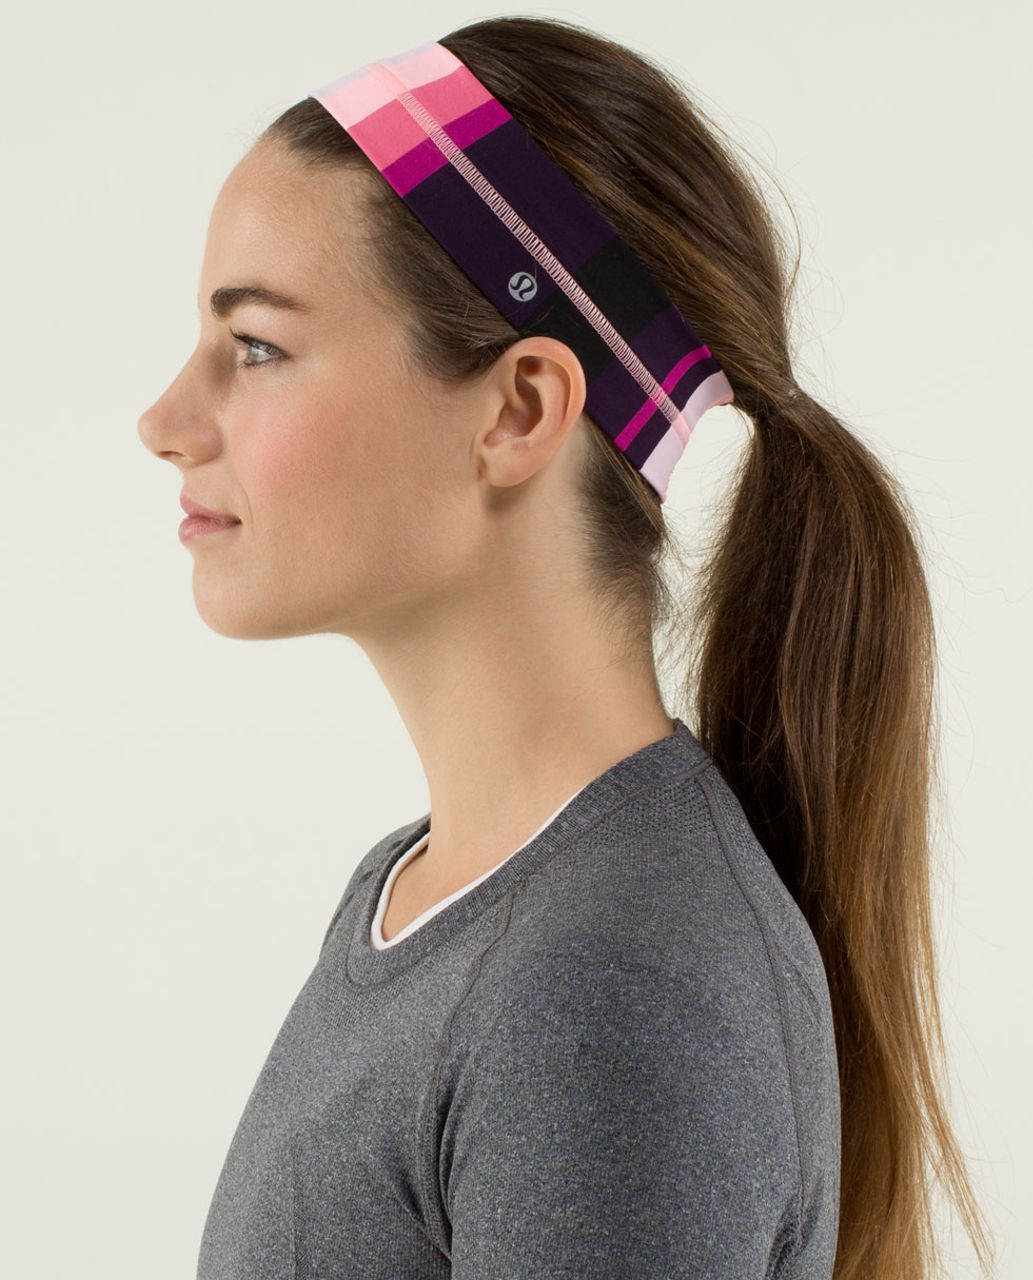 Lululemon Fly Away Tamer Headband - Assorted Stripe Bleached Coral